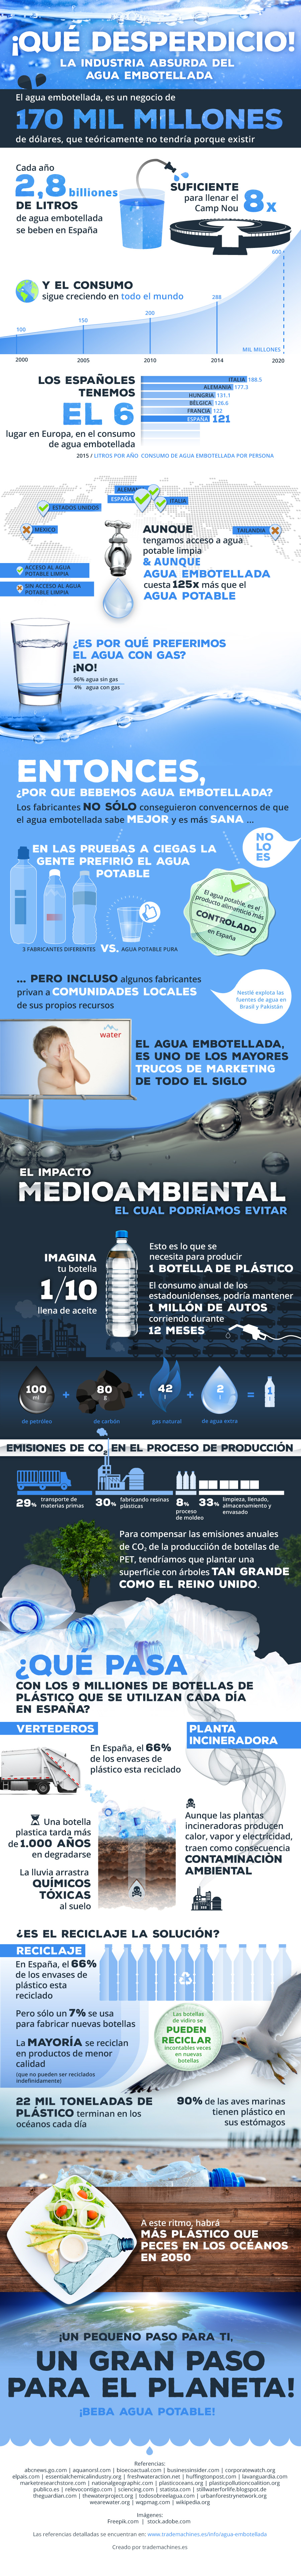 agua embotellada desperdicio